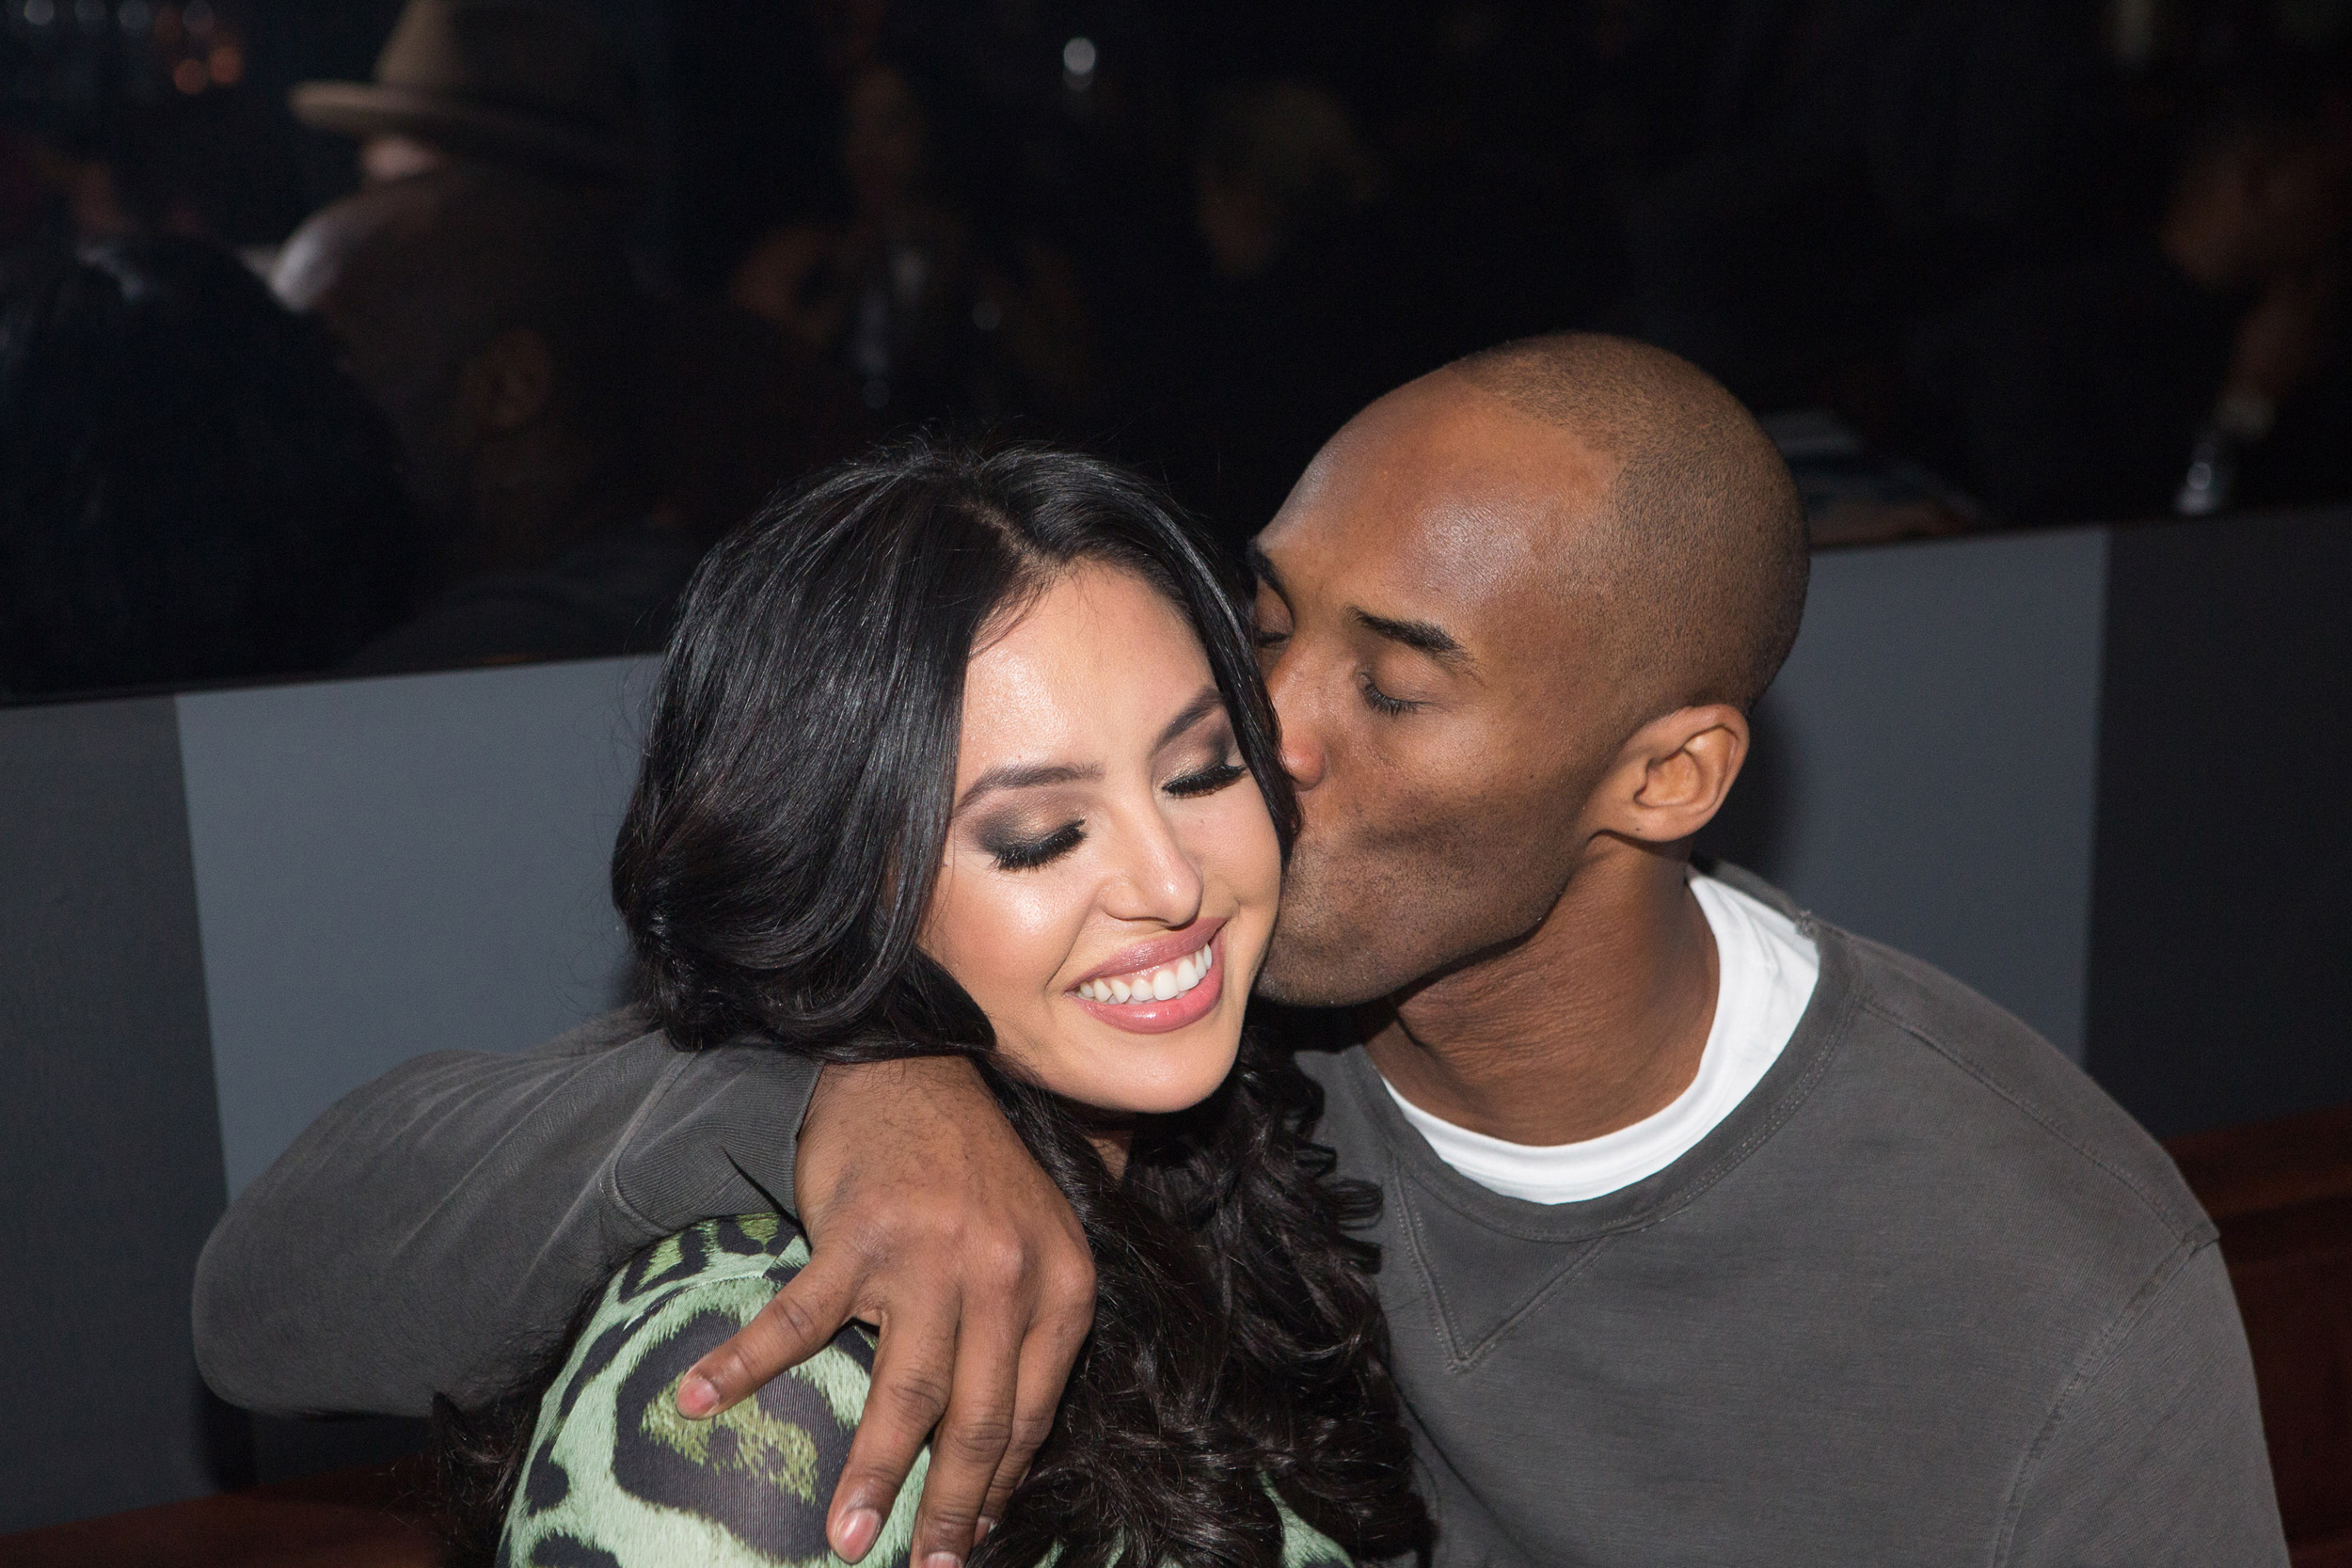 It should've been me': Vanessa Bryant pens heart-wrenching ...